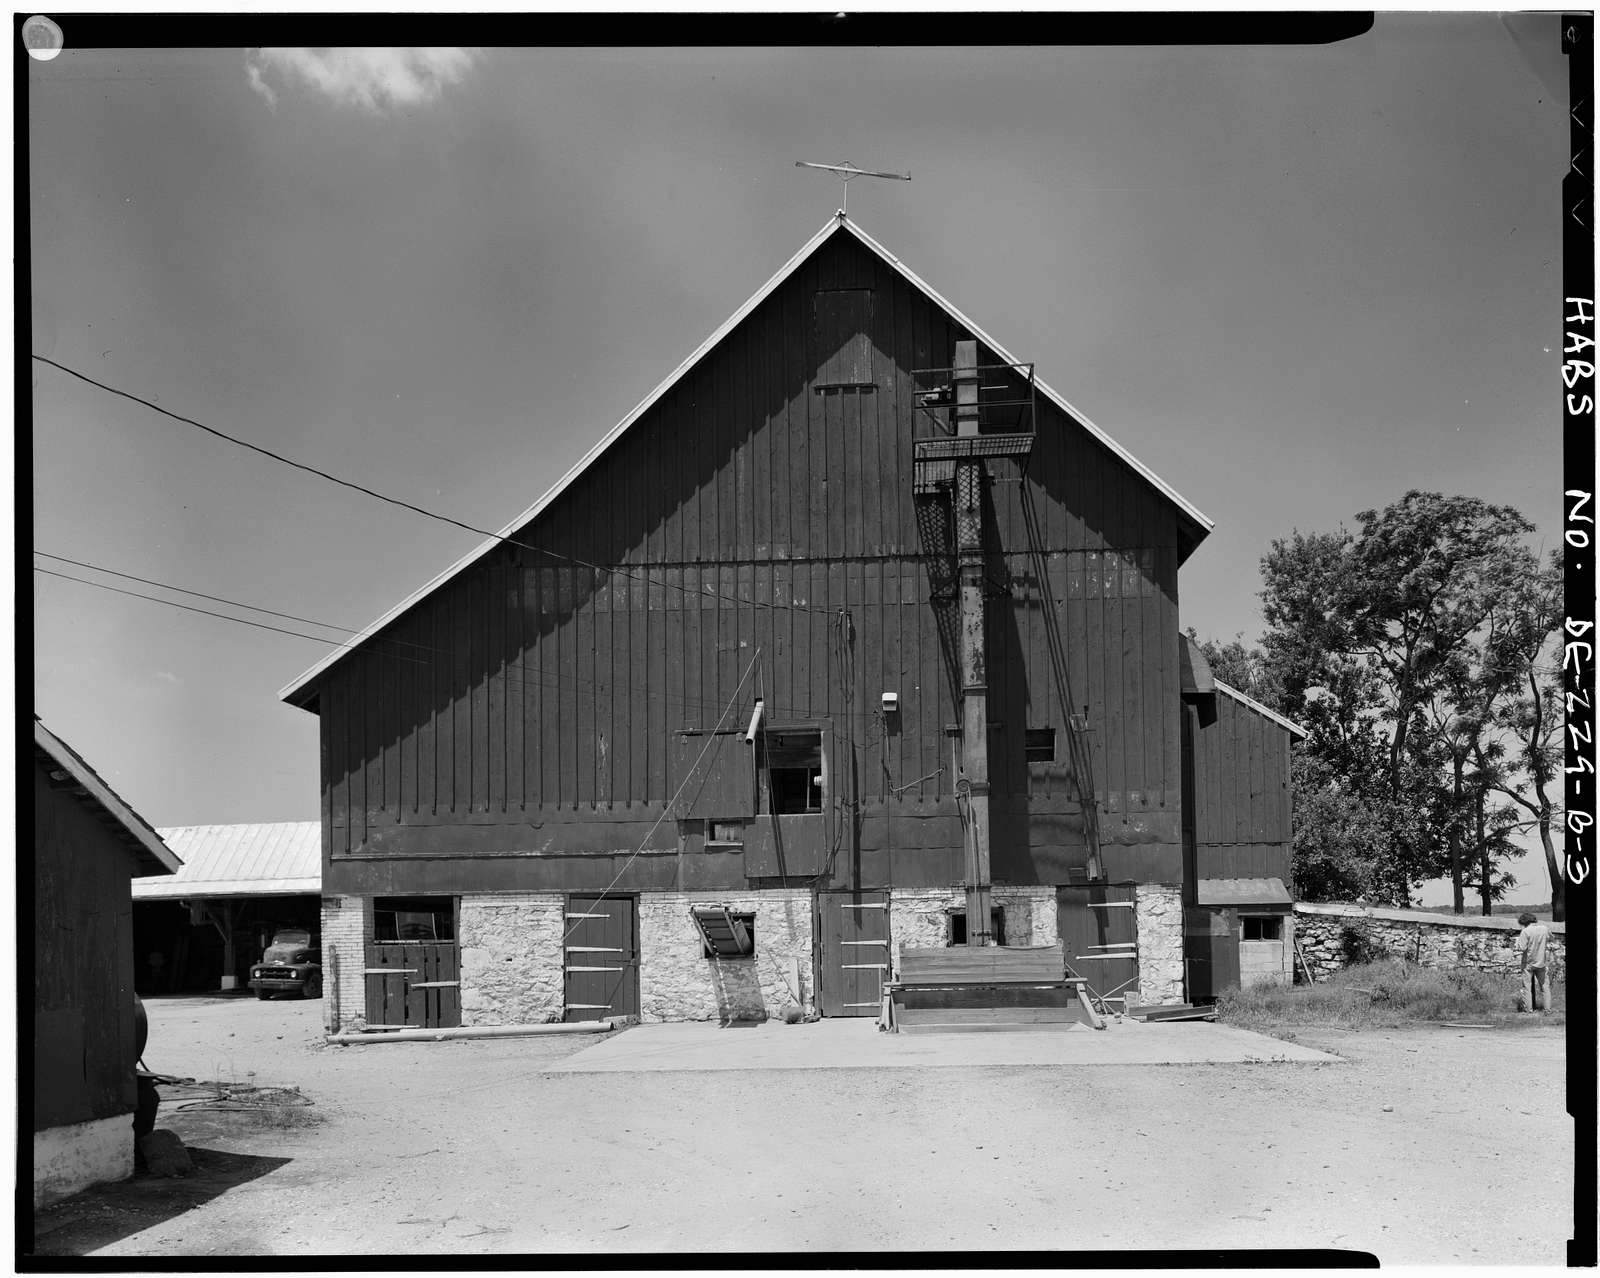 Woodlawn, Barn, Saint Georges Hundred, County Route 429, East of Route 428, Odessa, New Castle County, DE